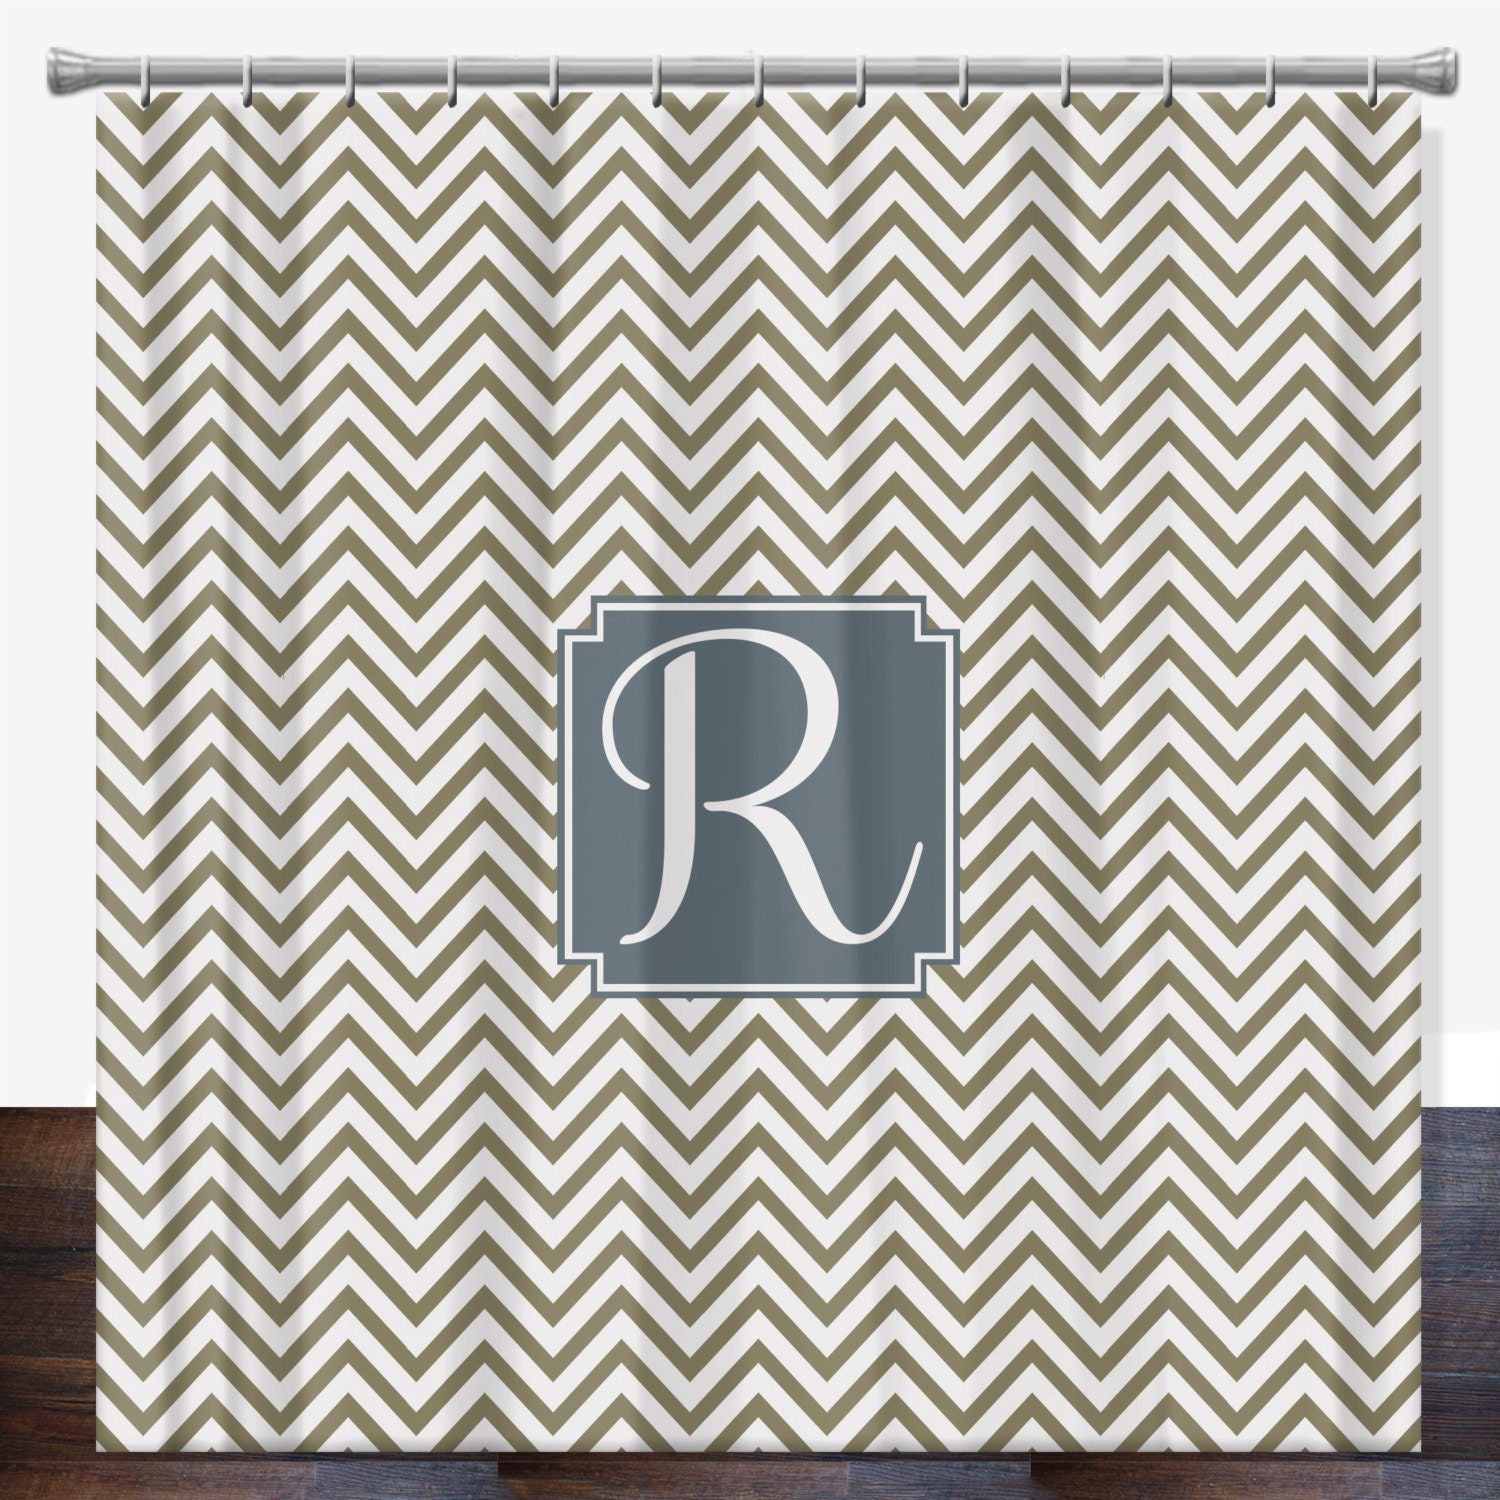 Personalized Shower Curtain Monogrammed By Limerikeedesigns